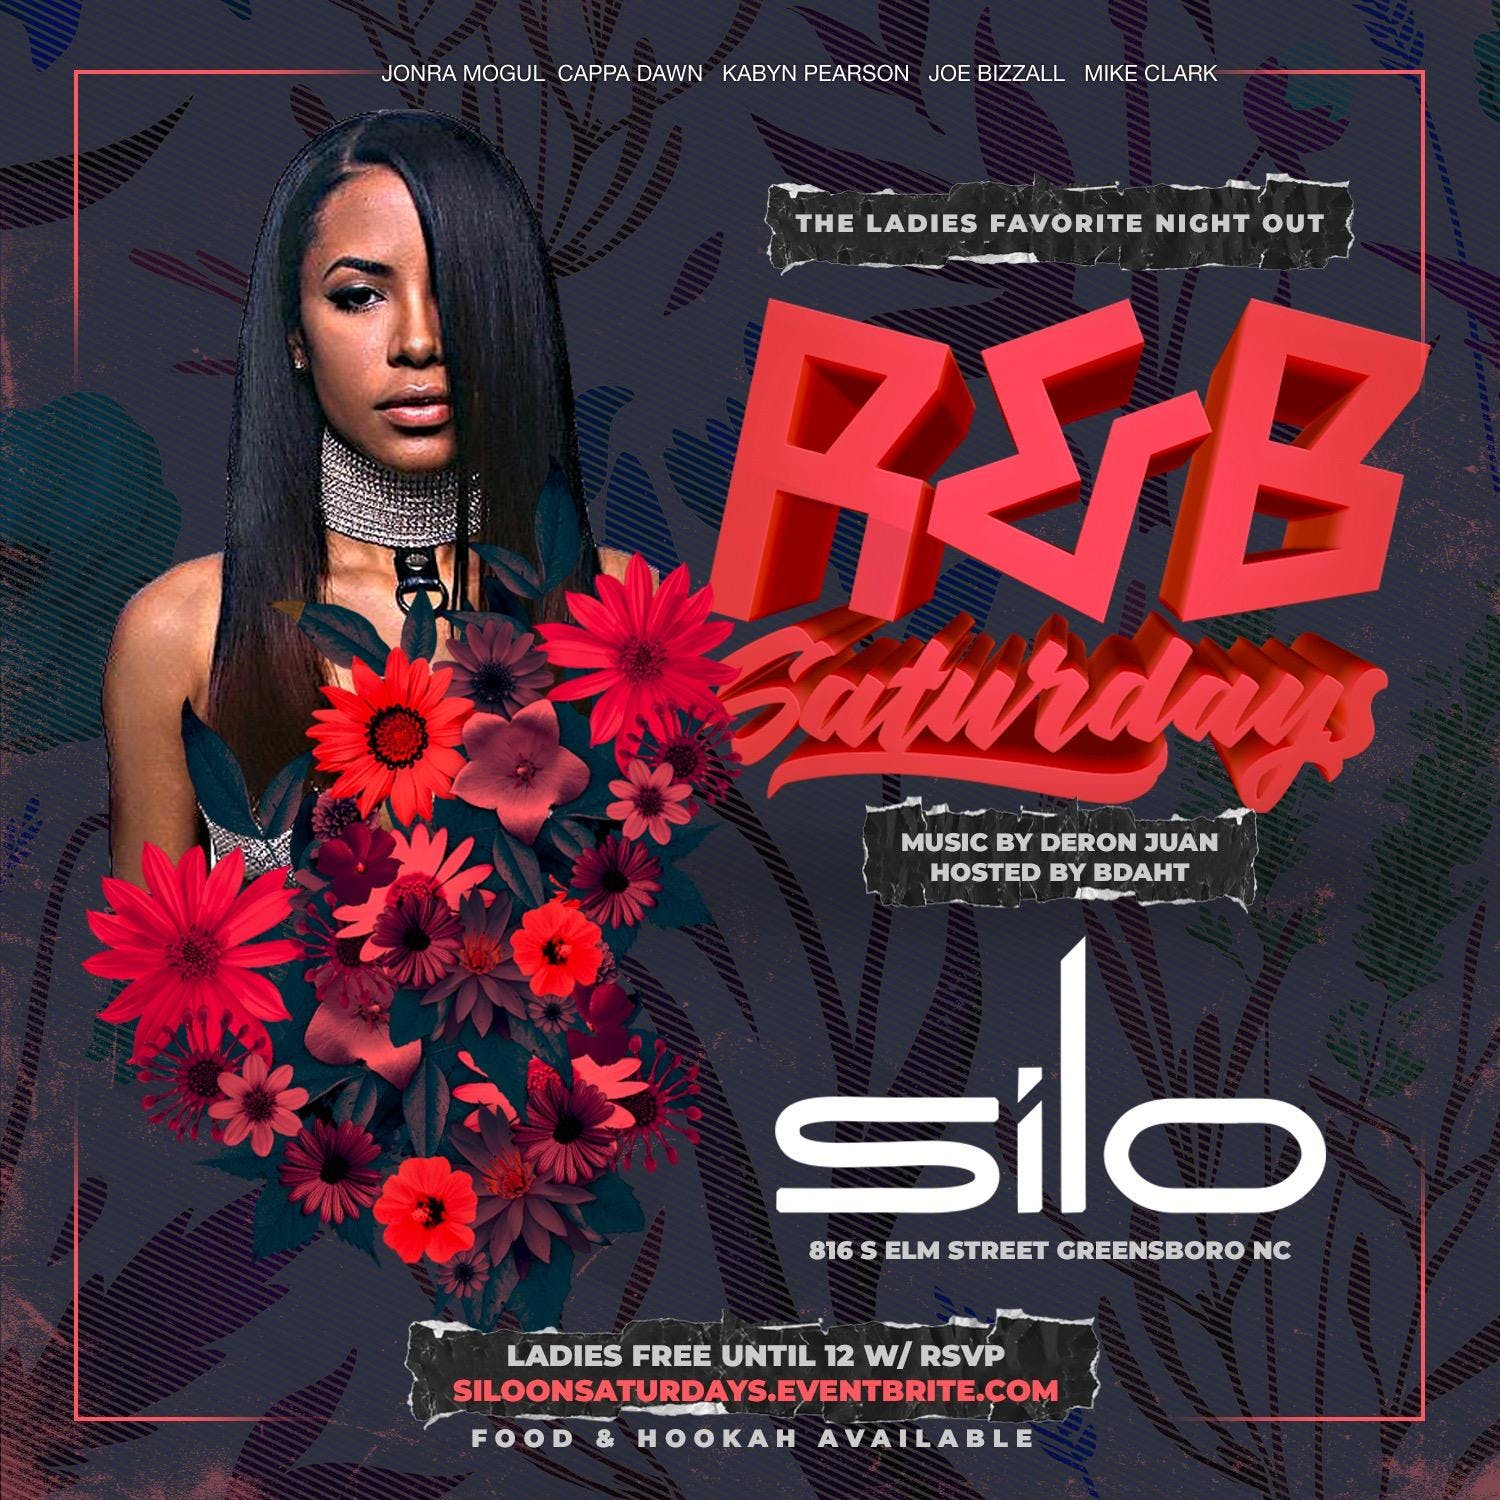 R&B Saturdays ///Hosted by B Daht